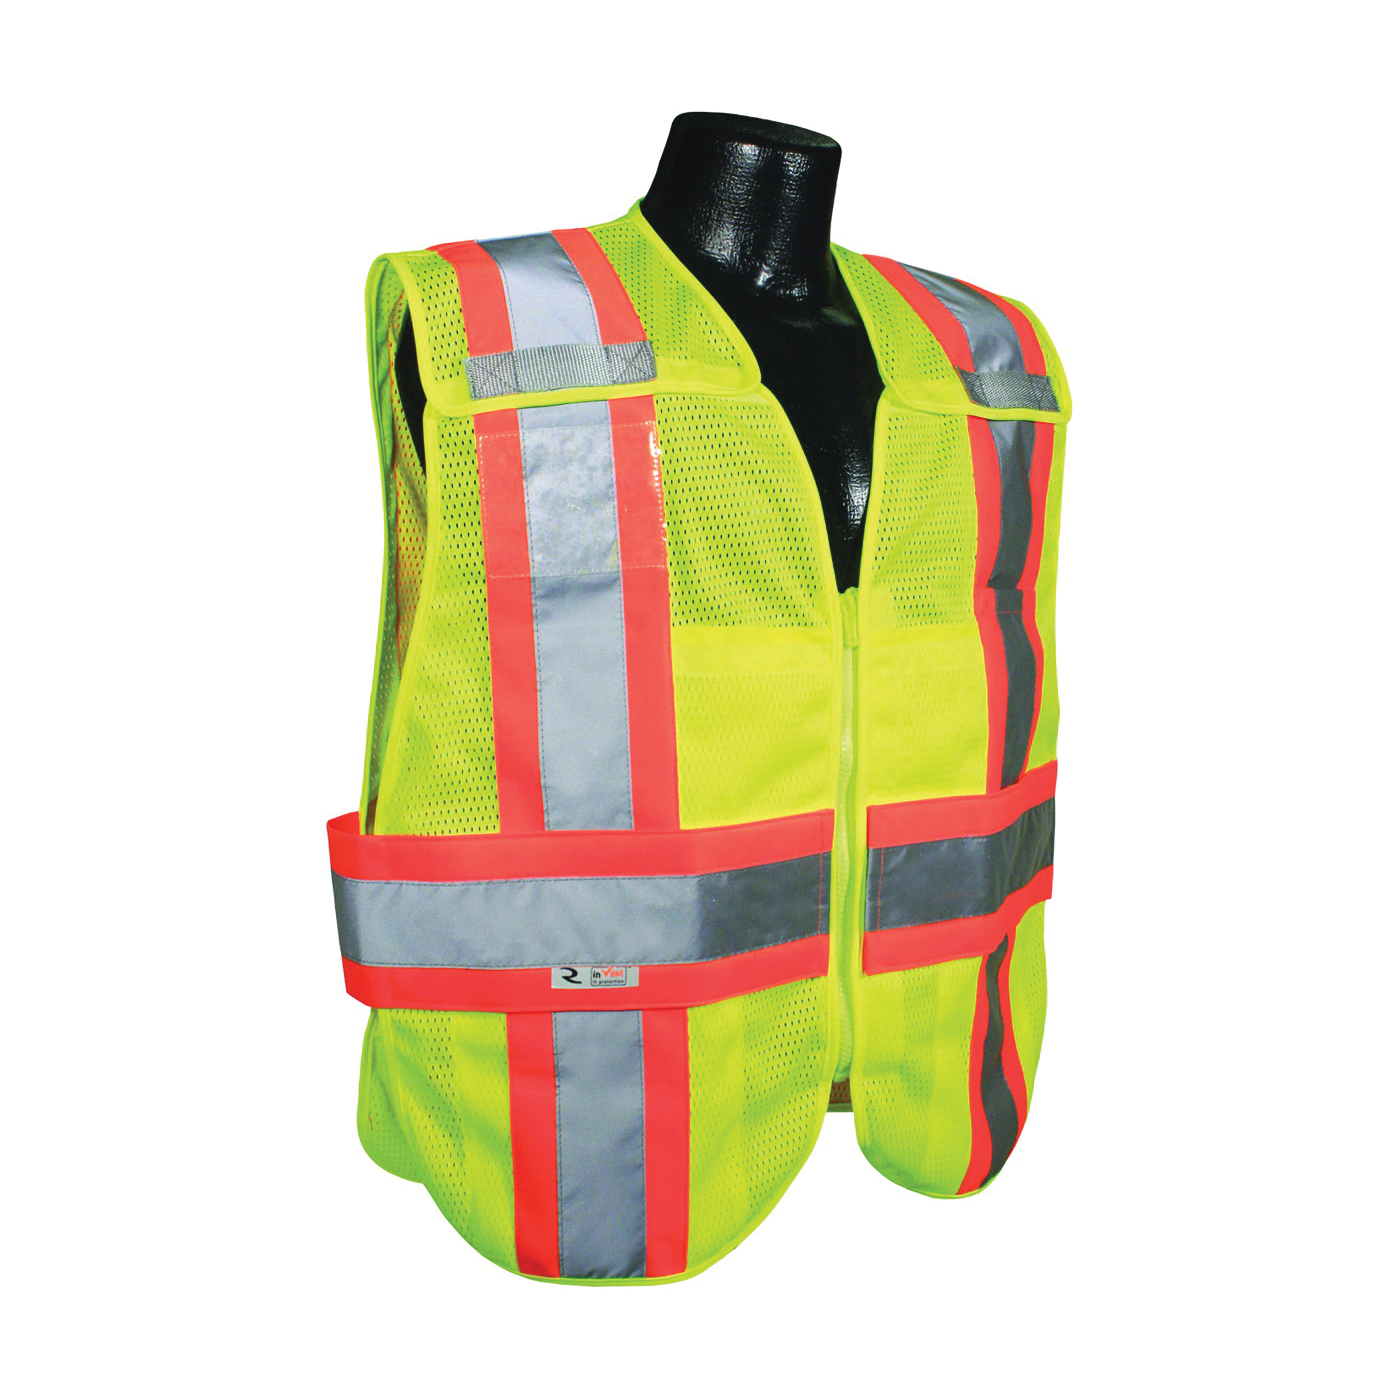 Picture of RADWEAR SV24-2ZGM-3X/5X Safety Vest, 3XL/5XL, Polyester, Green/Silver, Zip-N-Rip Closure